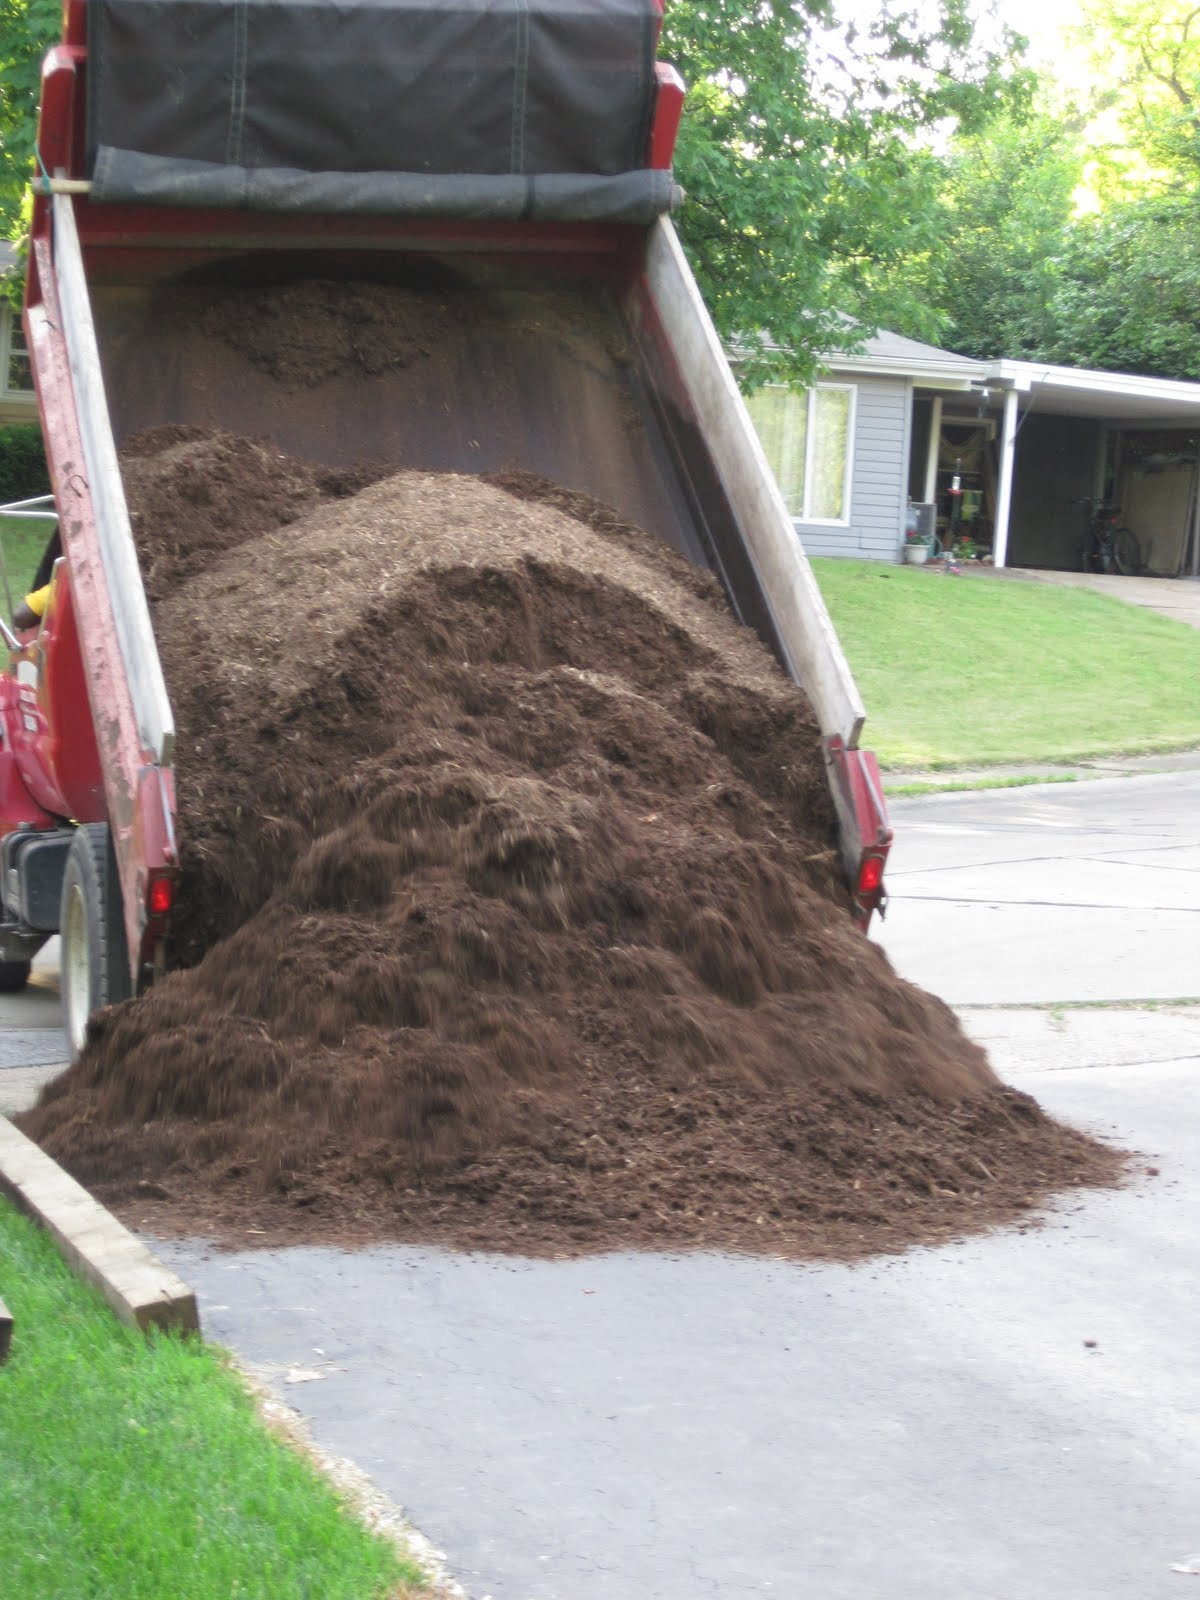 Happily Single: Do You Know What 6 Yards of Mulch Looks Like?